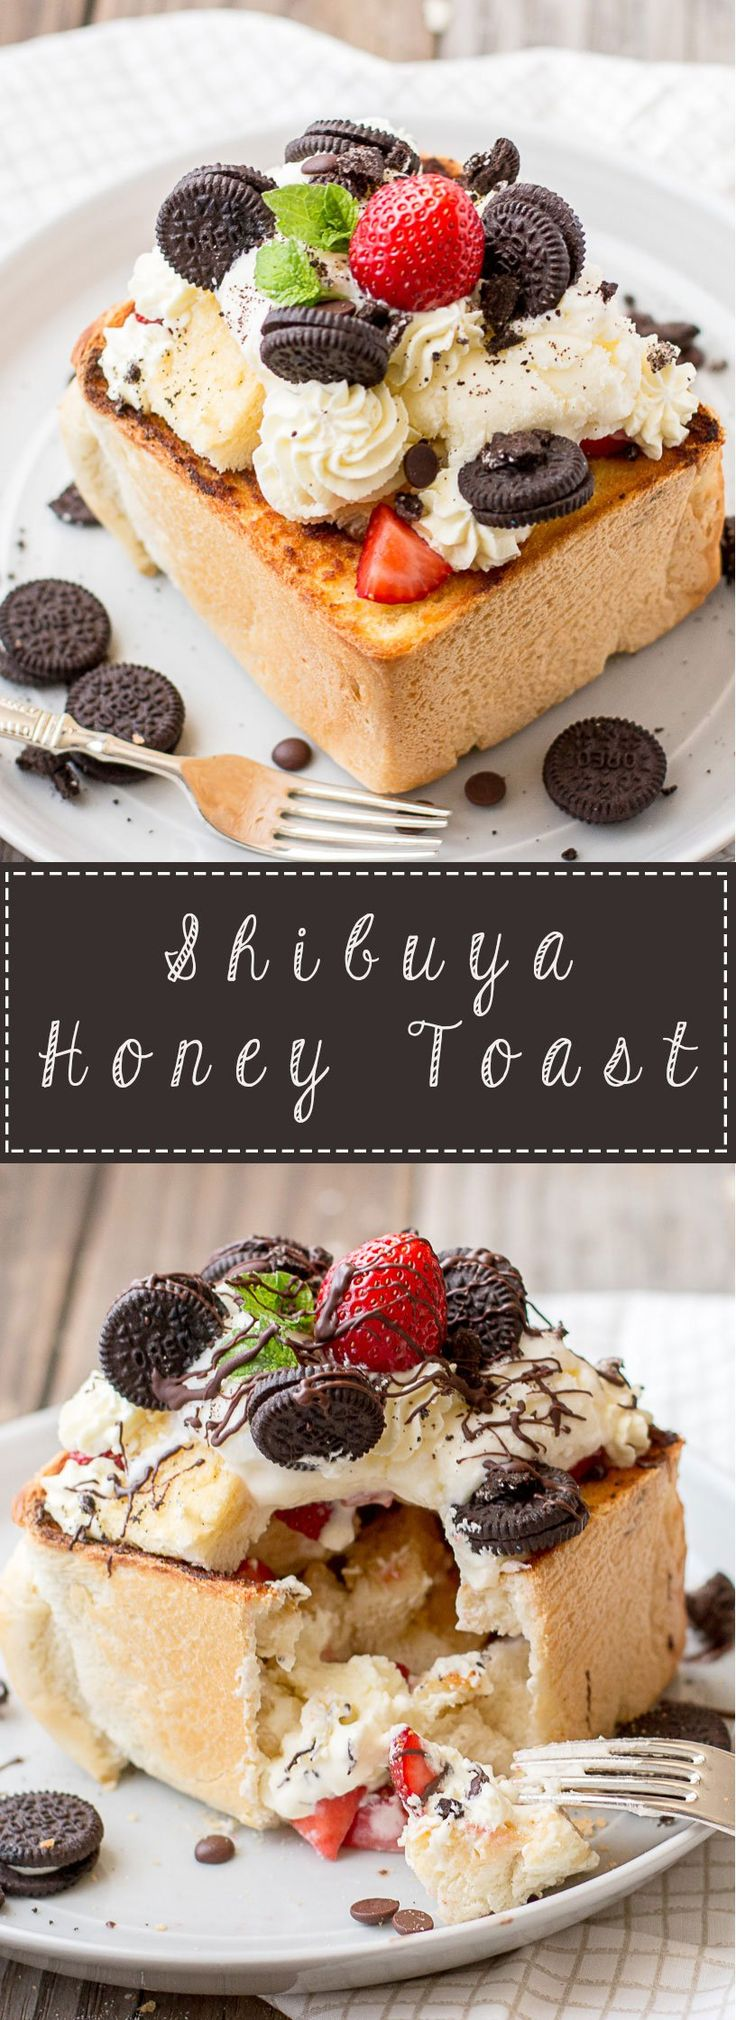 More amazing Shibuya Honey Toast -My life has no meaning till I get to eat one of these!